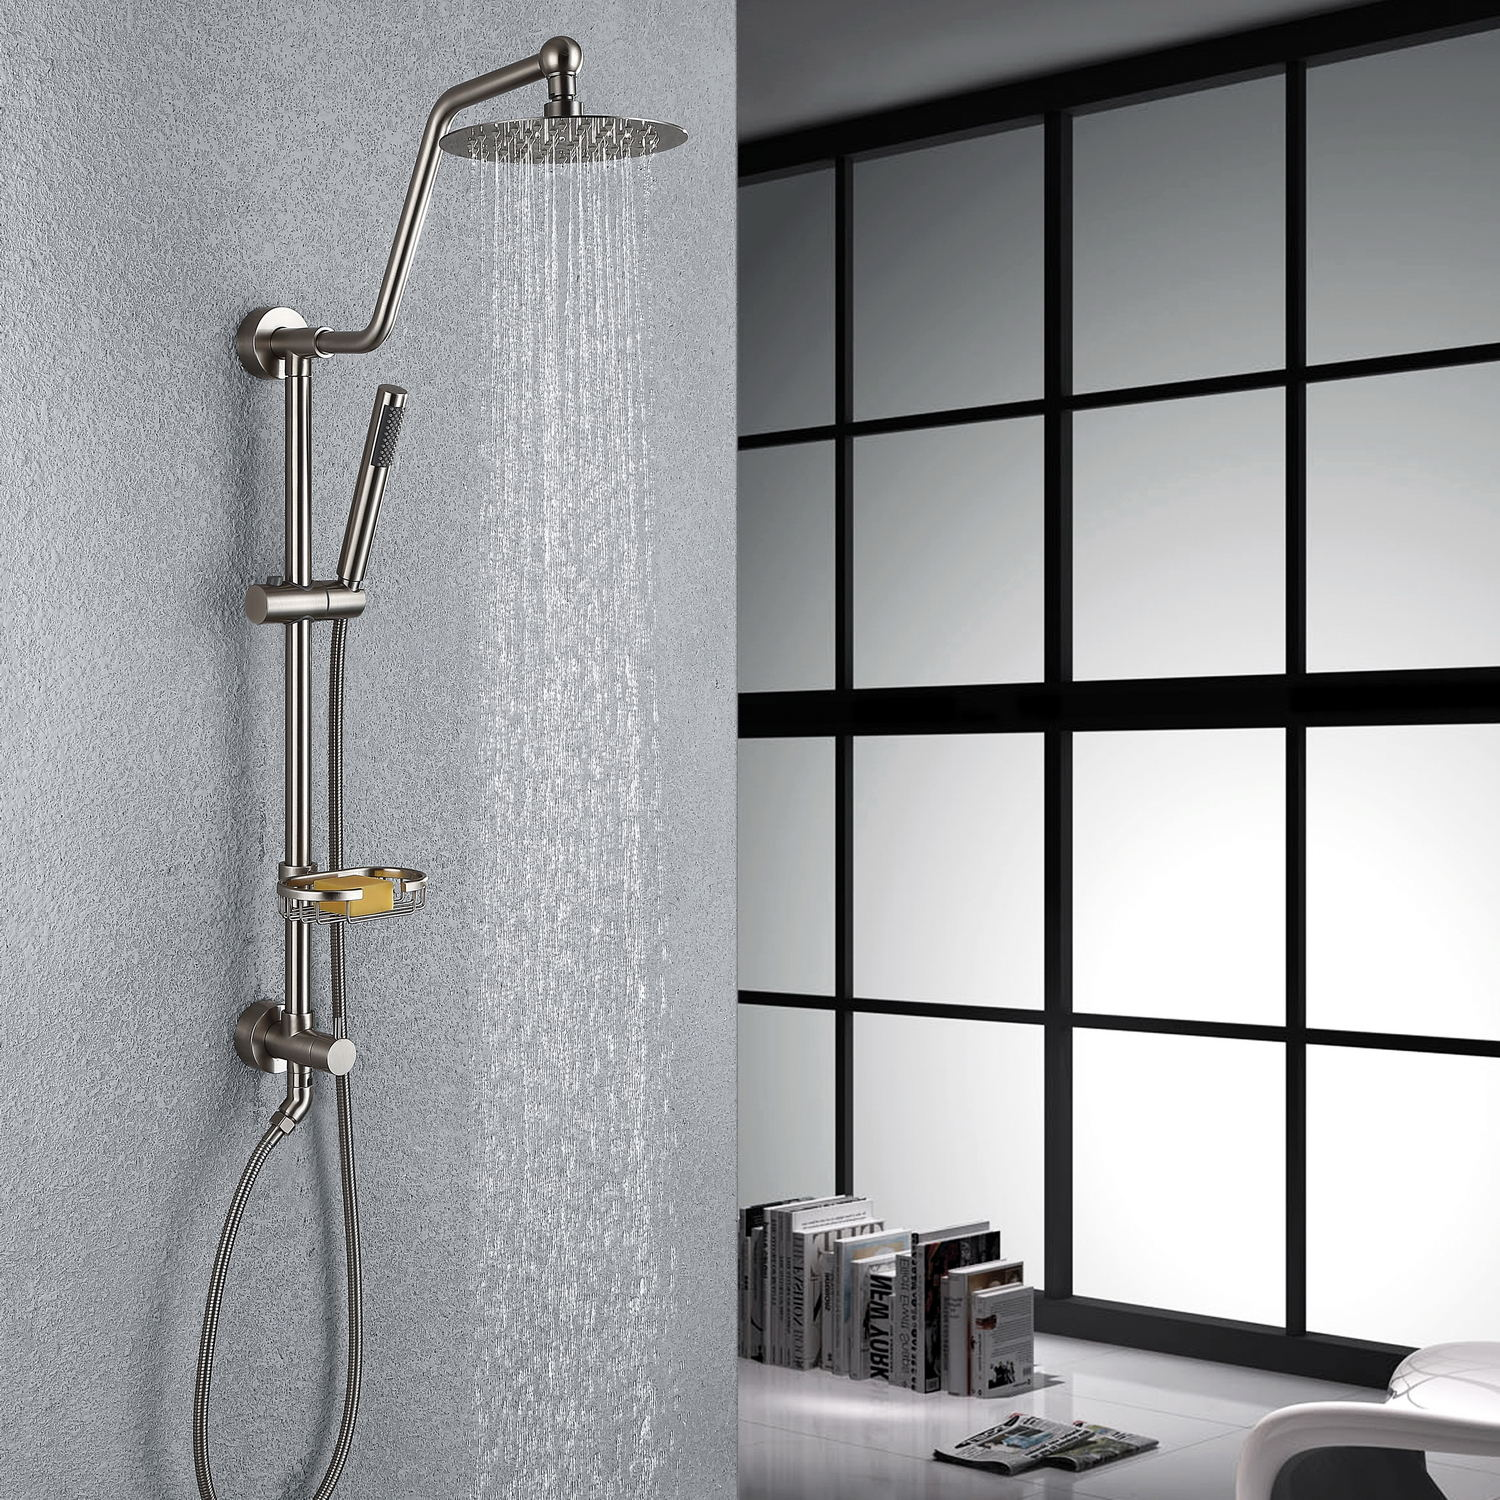 Details About HOMELODY Wall Mounted Slide Bar Rain Shower Column With Hand Shower  Head Set